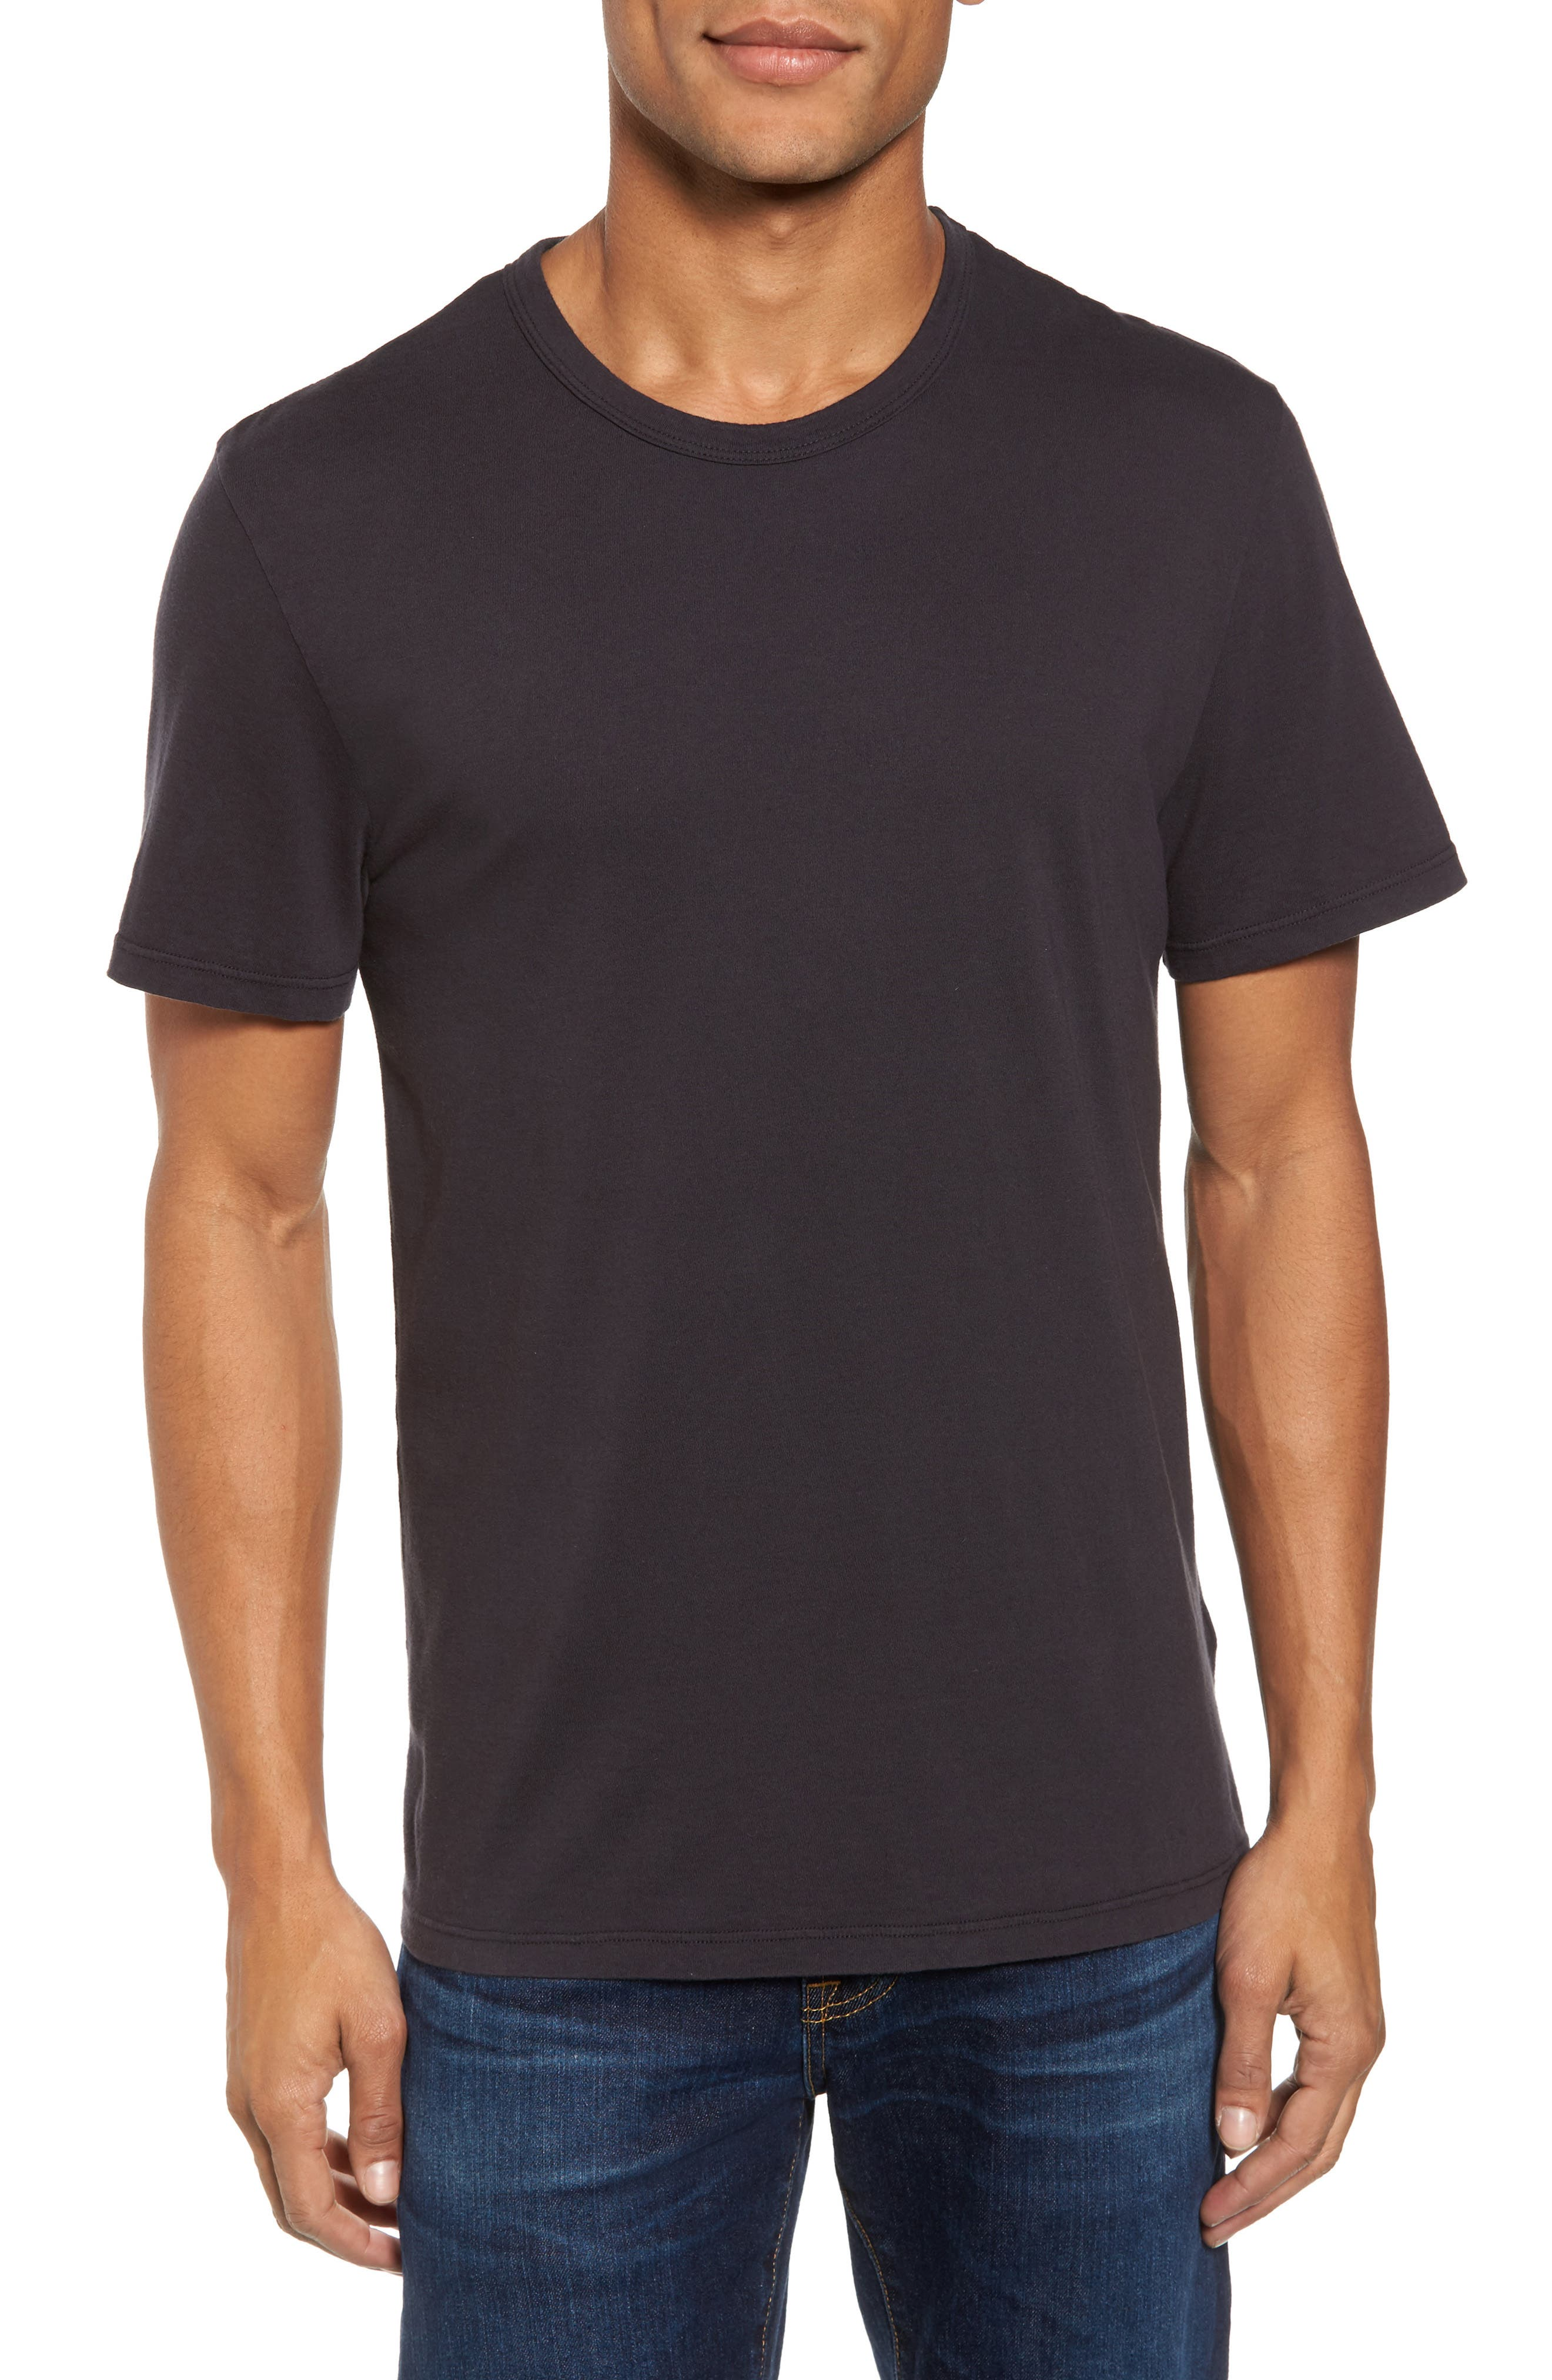 Alternate Image 1 Selected - James Perse Suvin Crewneck T-Shirt